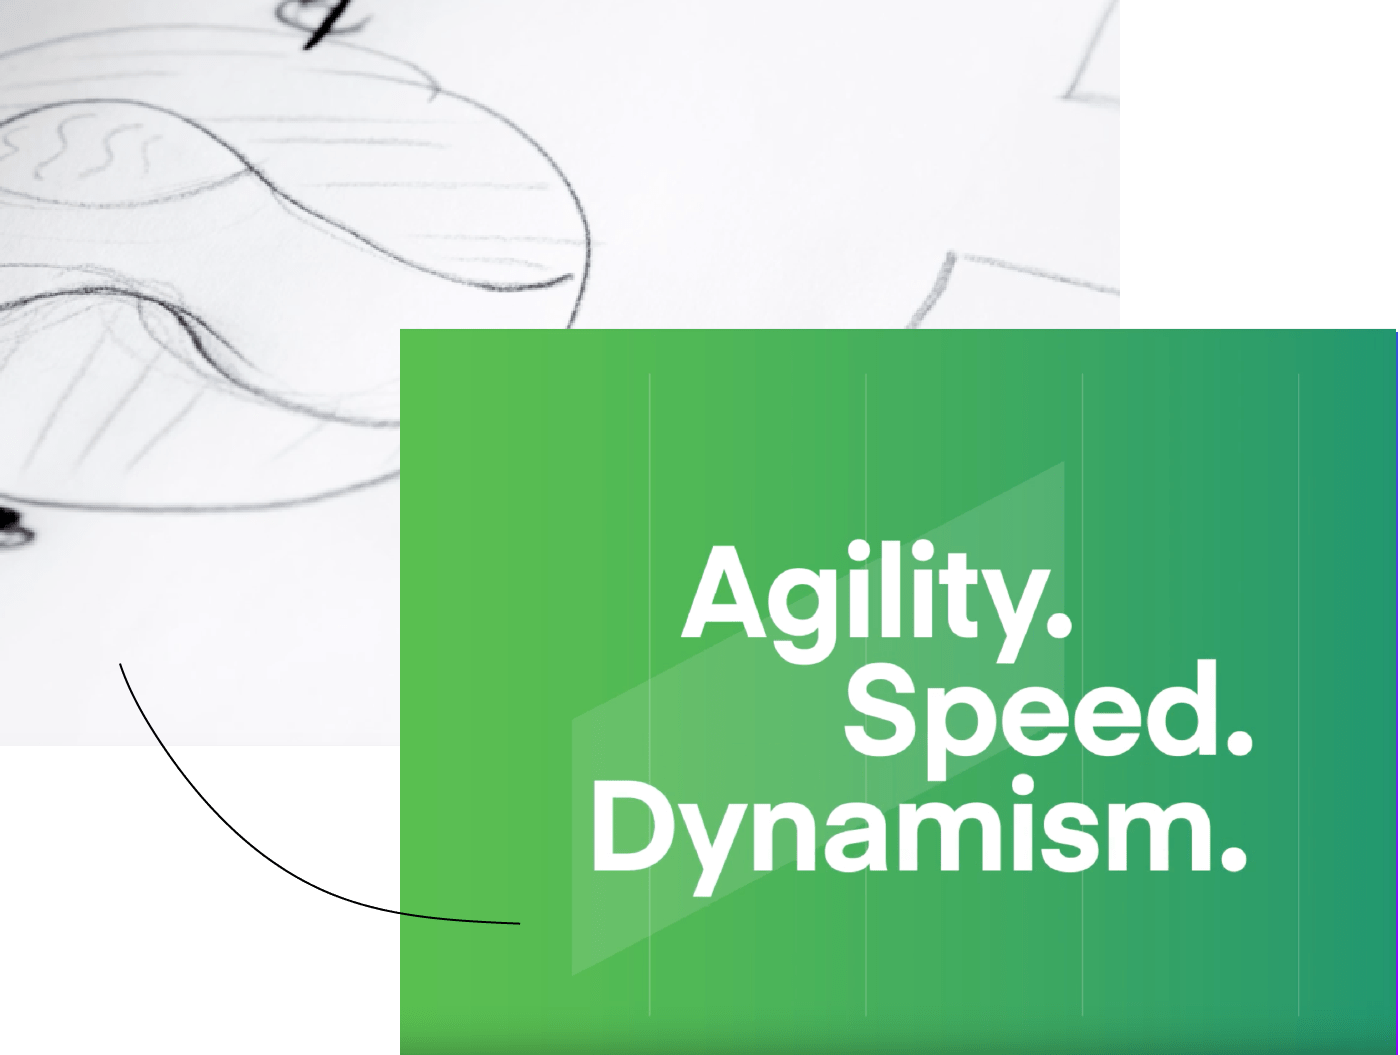 agility speed dynamism text image